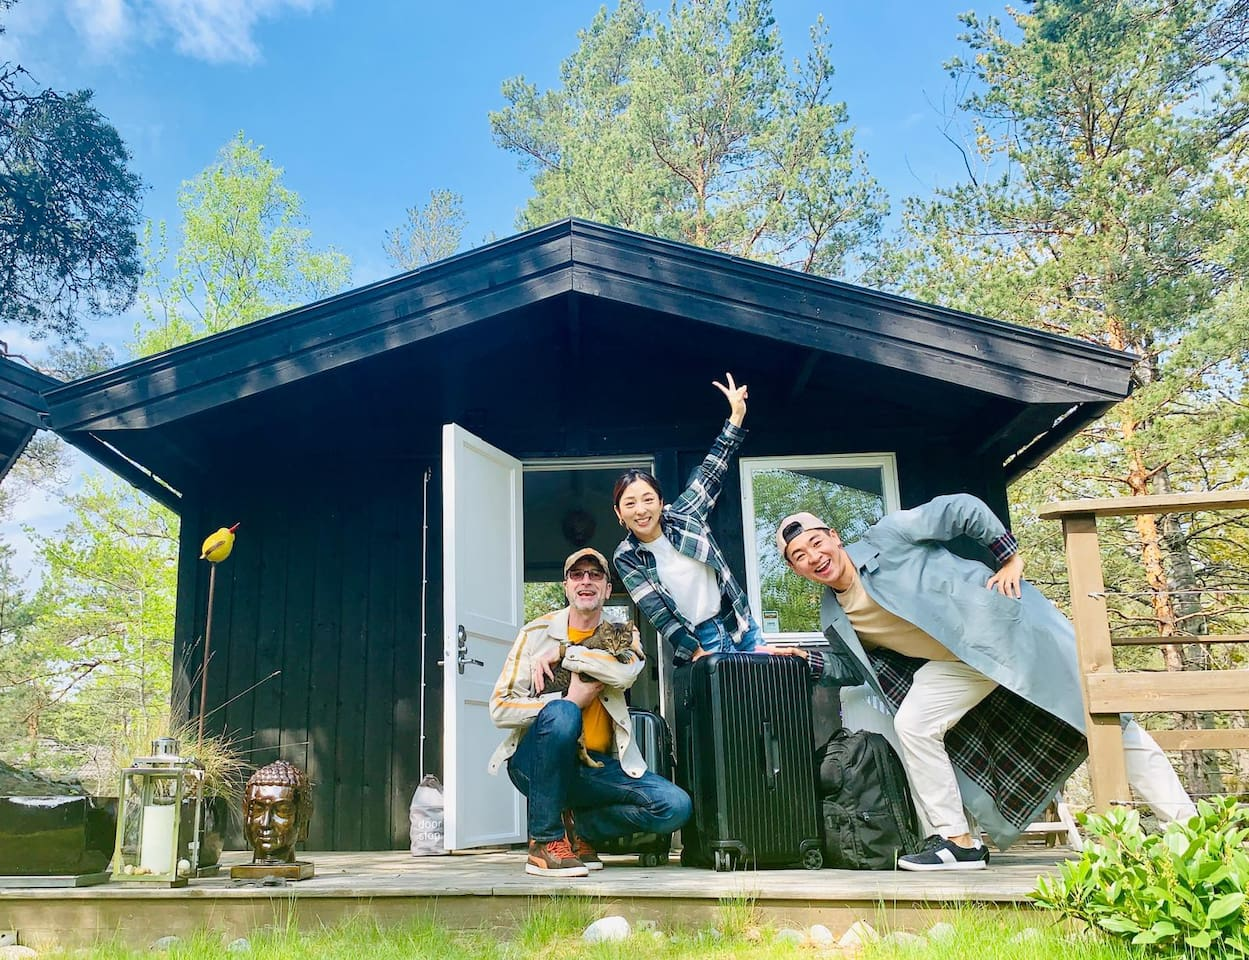 Are you looking for an eco-friendly 5-star stay? Sleep in a cosy cabin for two, have access to my house where you find bathroom, kitchen, a very large terrace with barbecue, hot tub and outdoor shower. Thanks Choi and Yoshi for the great photo:)